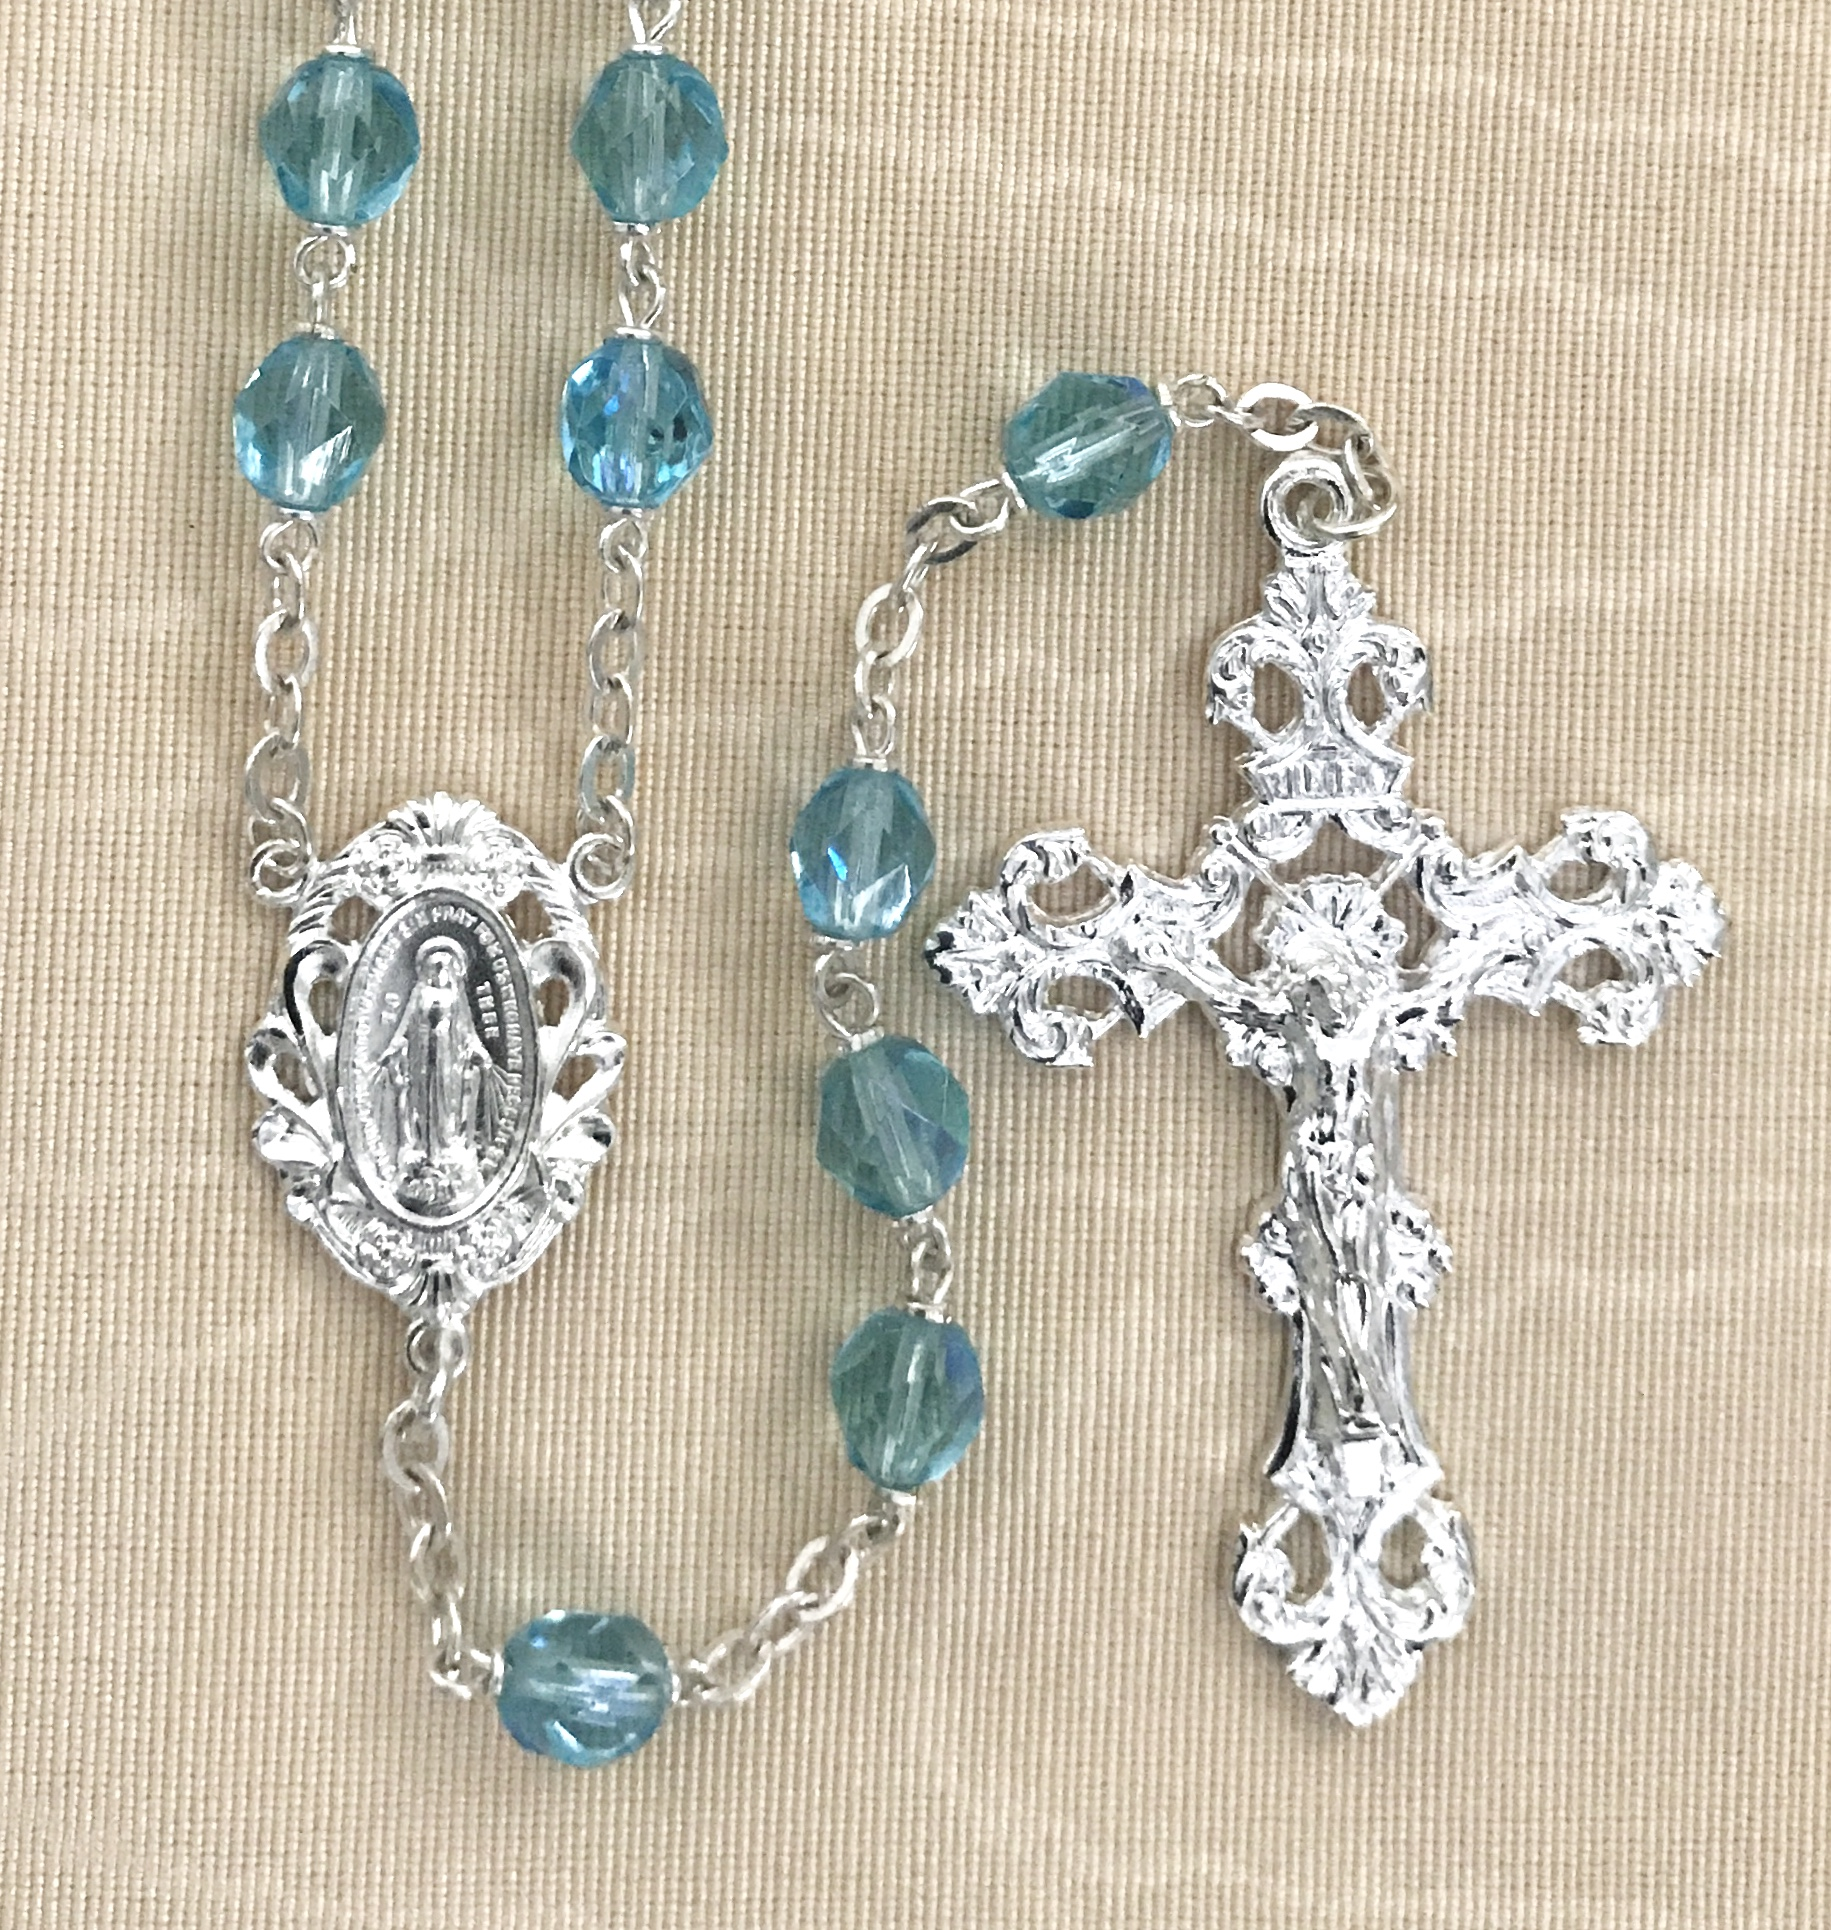 7mm ROUND AQUA AB SILVER STERLING SILVER PLATED ROSARY GIFT BOXED